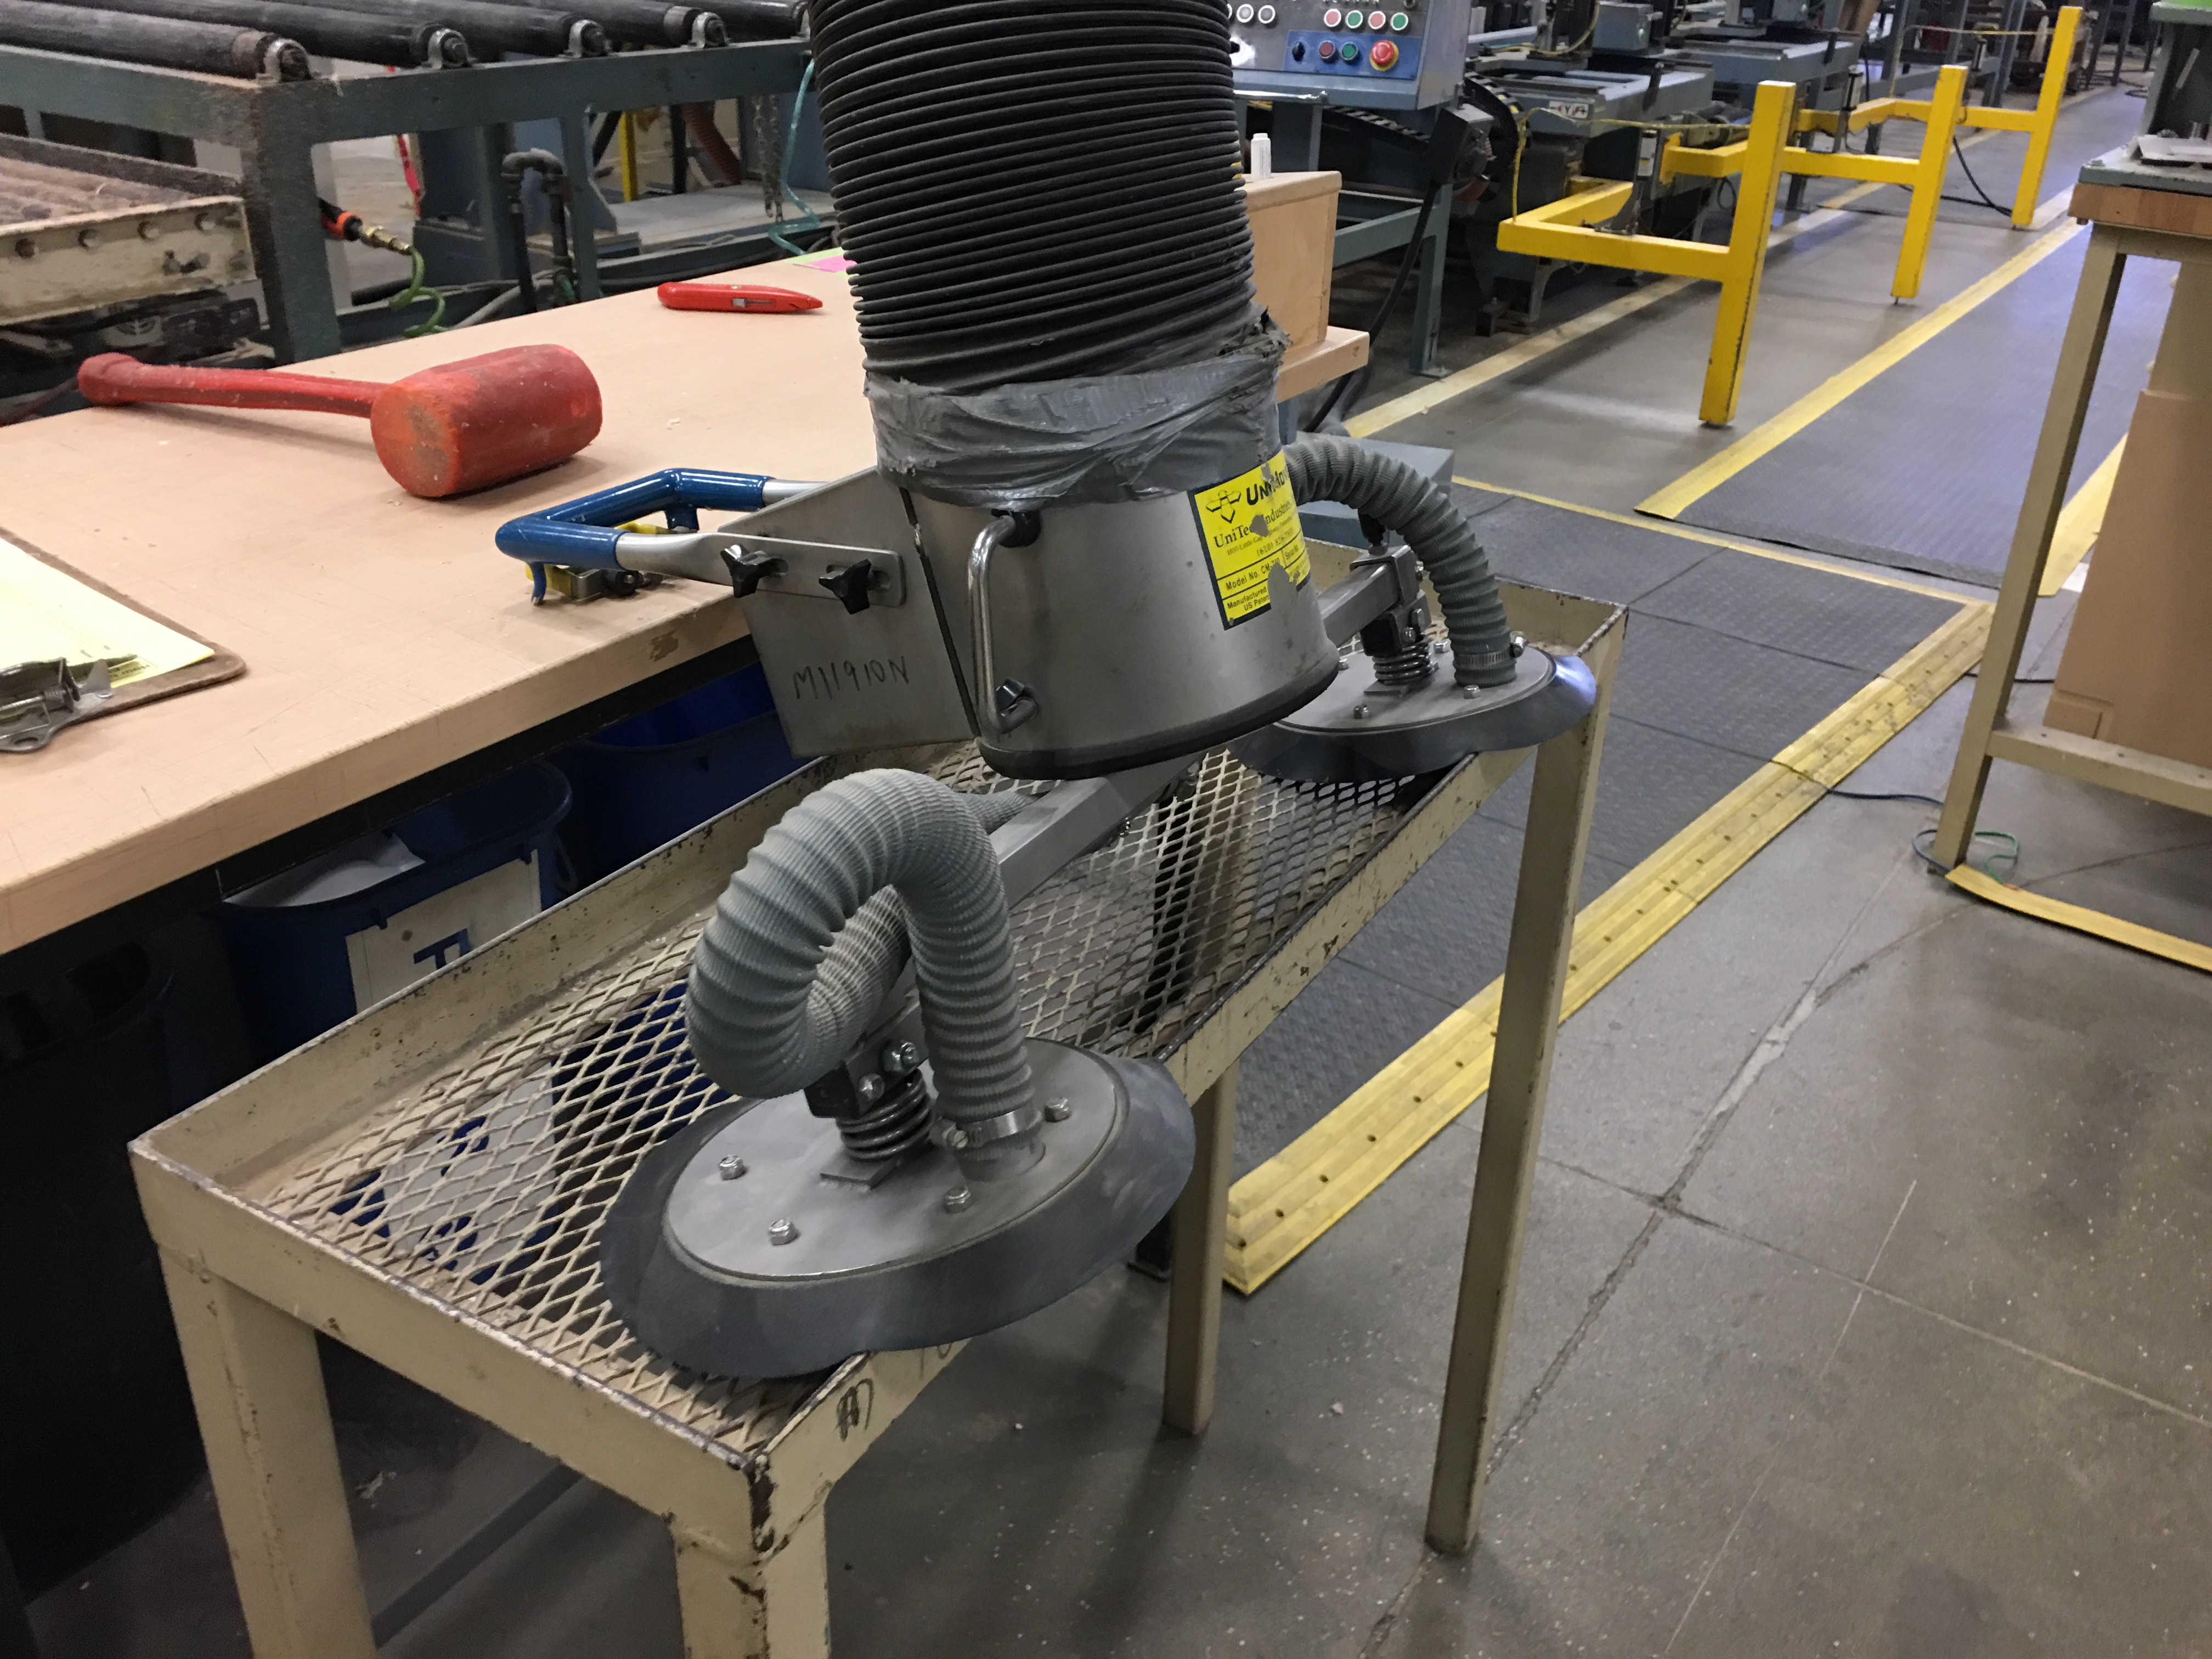 Lot 1 - VACUUM LIFTER WITH PUMP AND OVERHEAD GANTRY RAILS